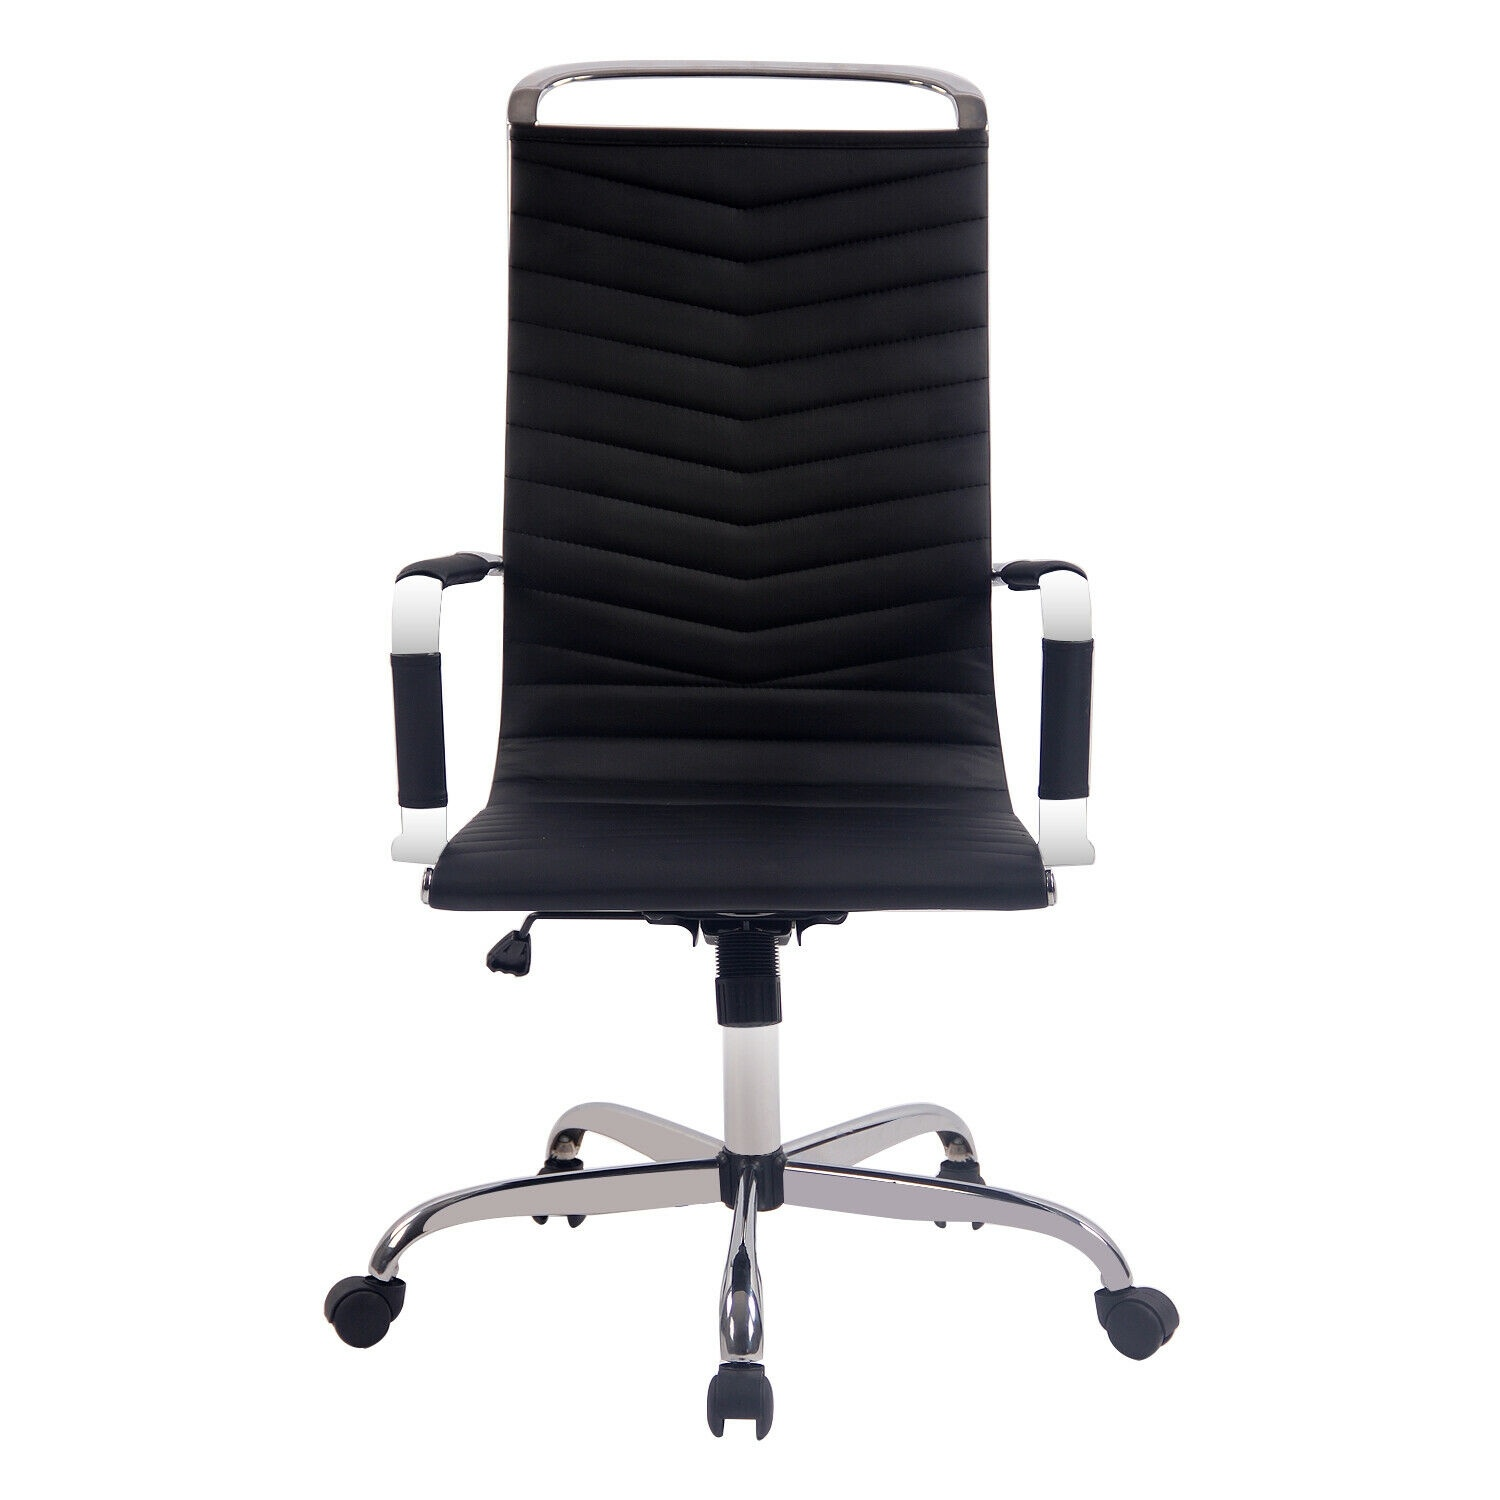 Executive Swivel Office Chair Racing Style Computer Seat High Back Leather Black